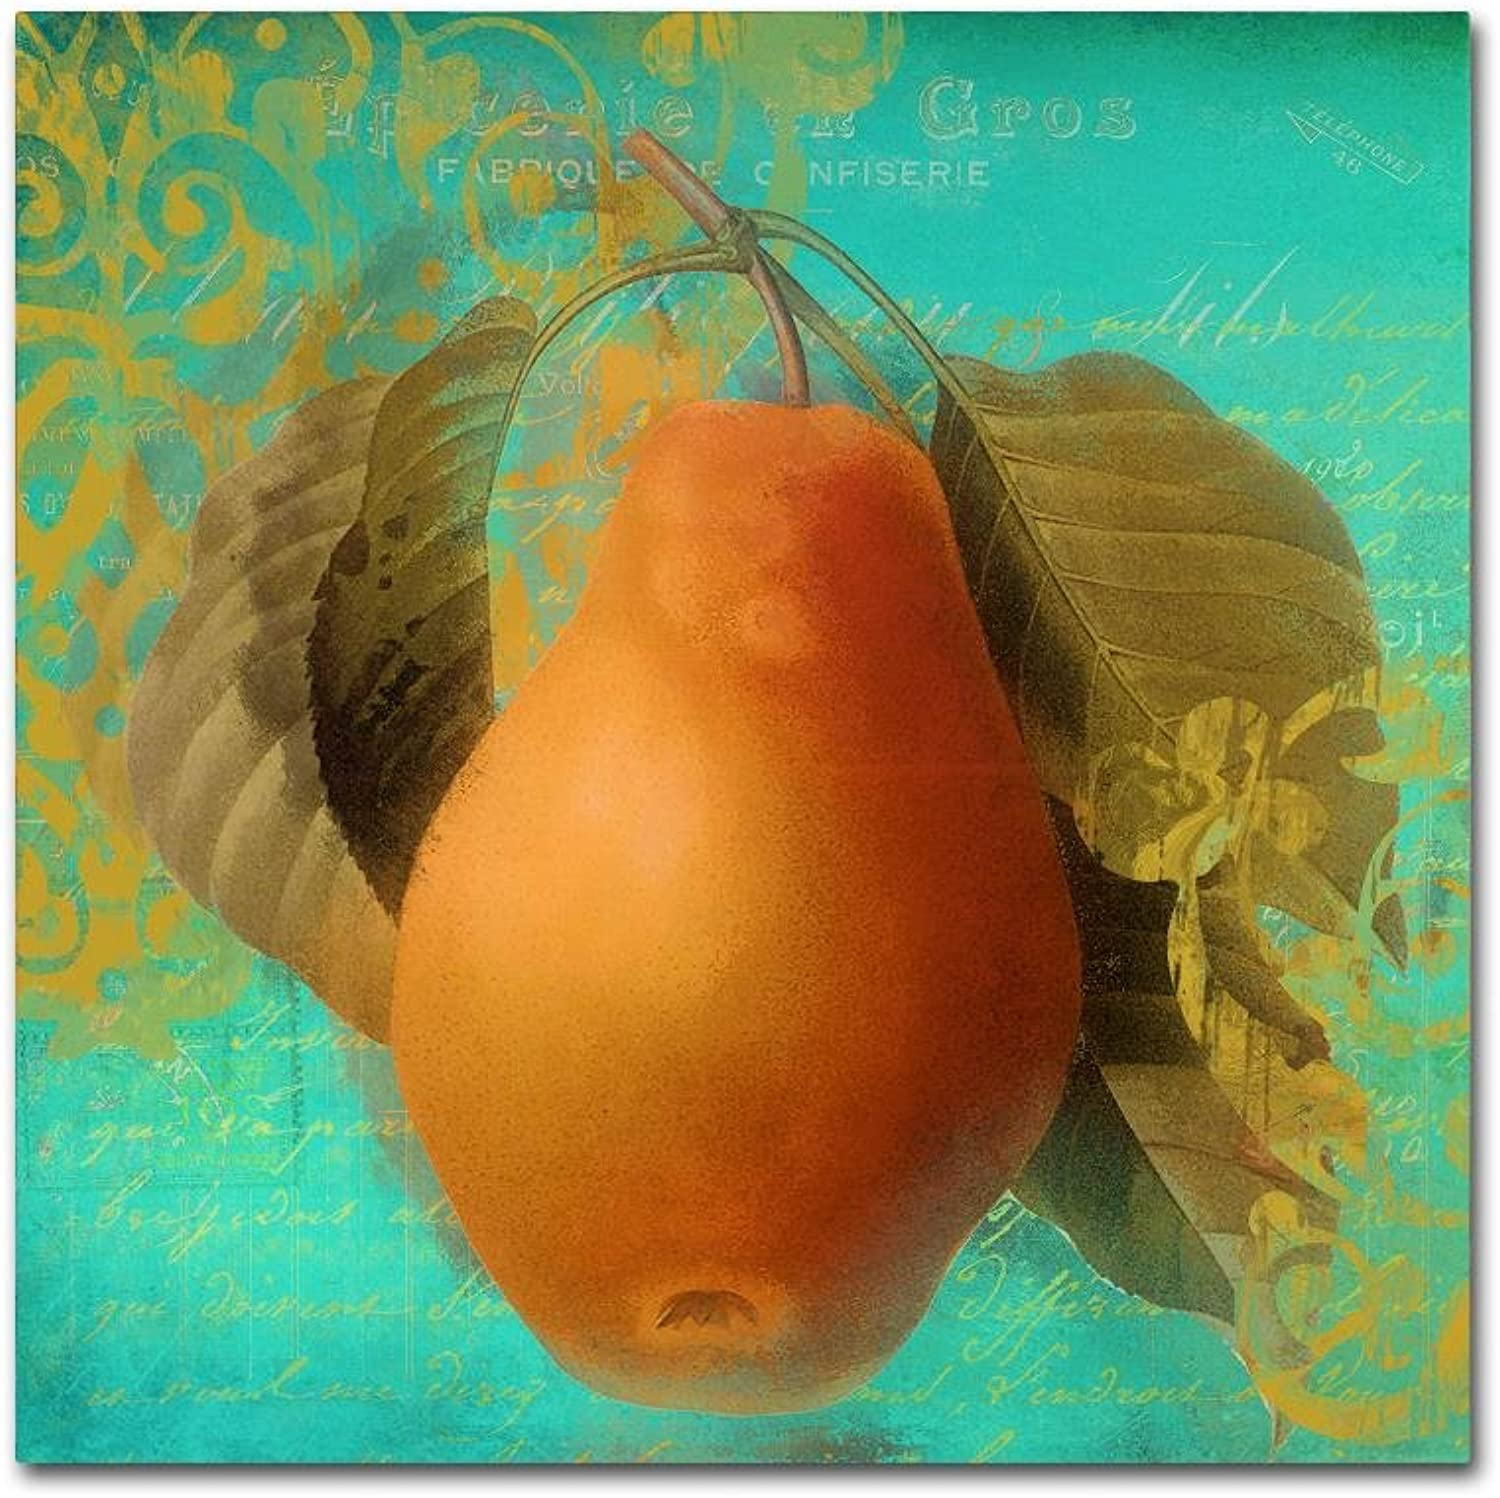 Trademark Fine Art Glowing Fruits IV by color Bakery Canvas Wall Art 14x14